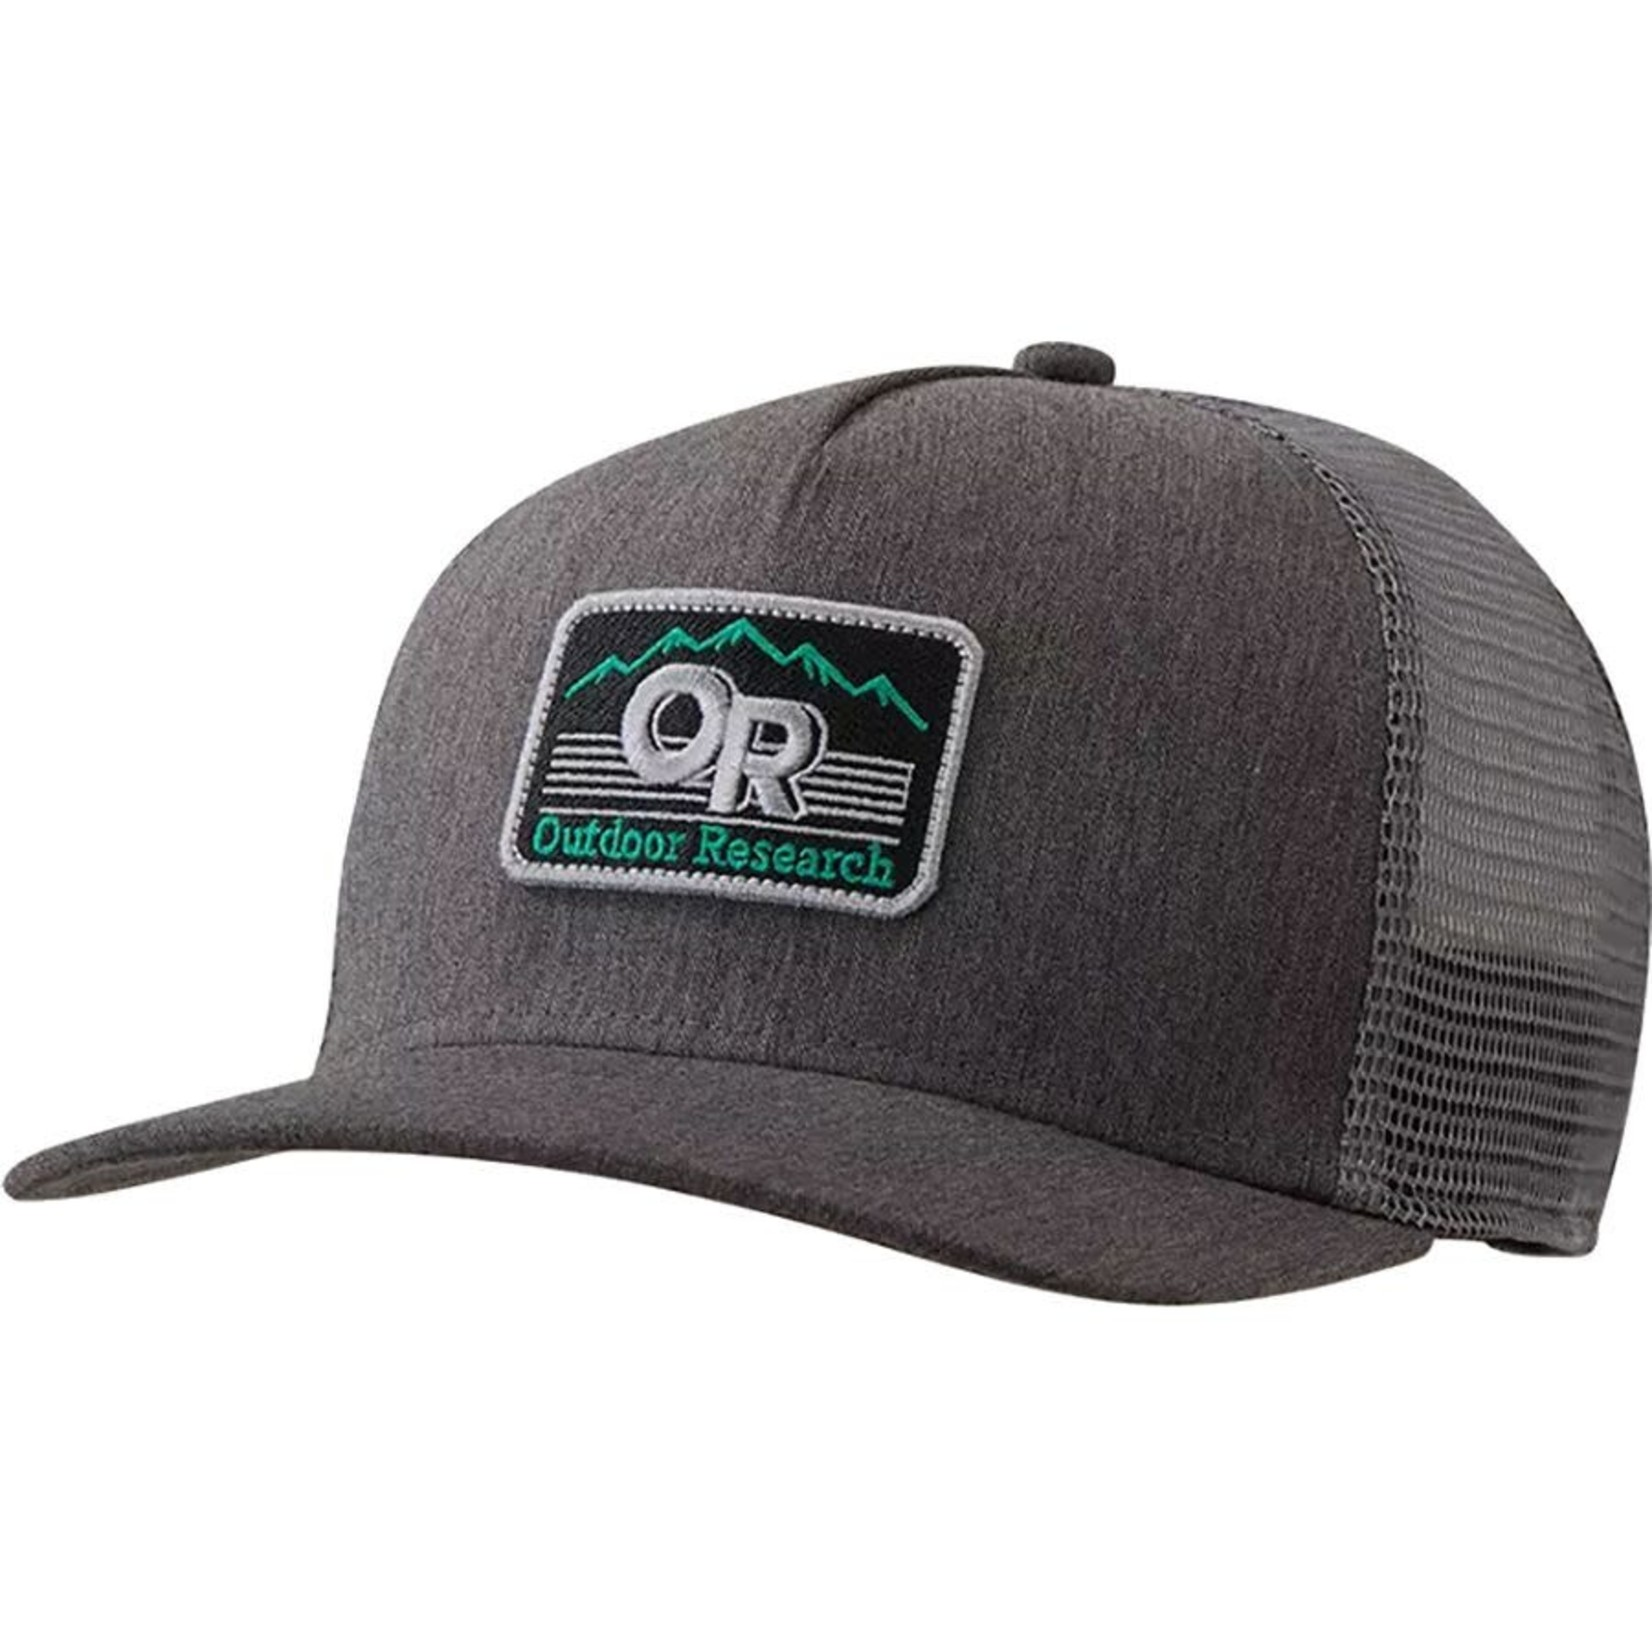 Outdoor Research Outdoor Research Advocate Trucker Cap Charcoal Heather